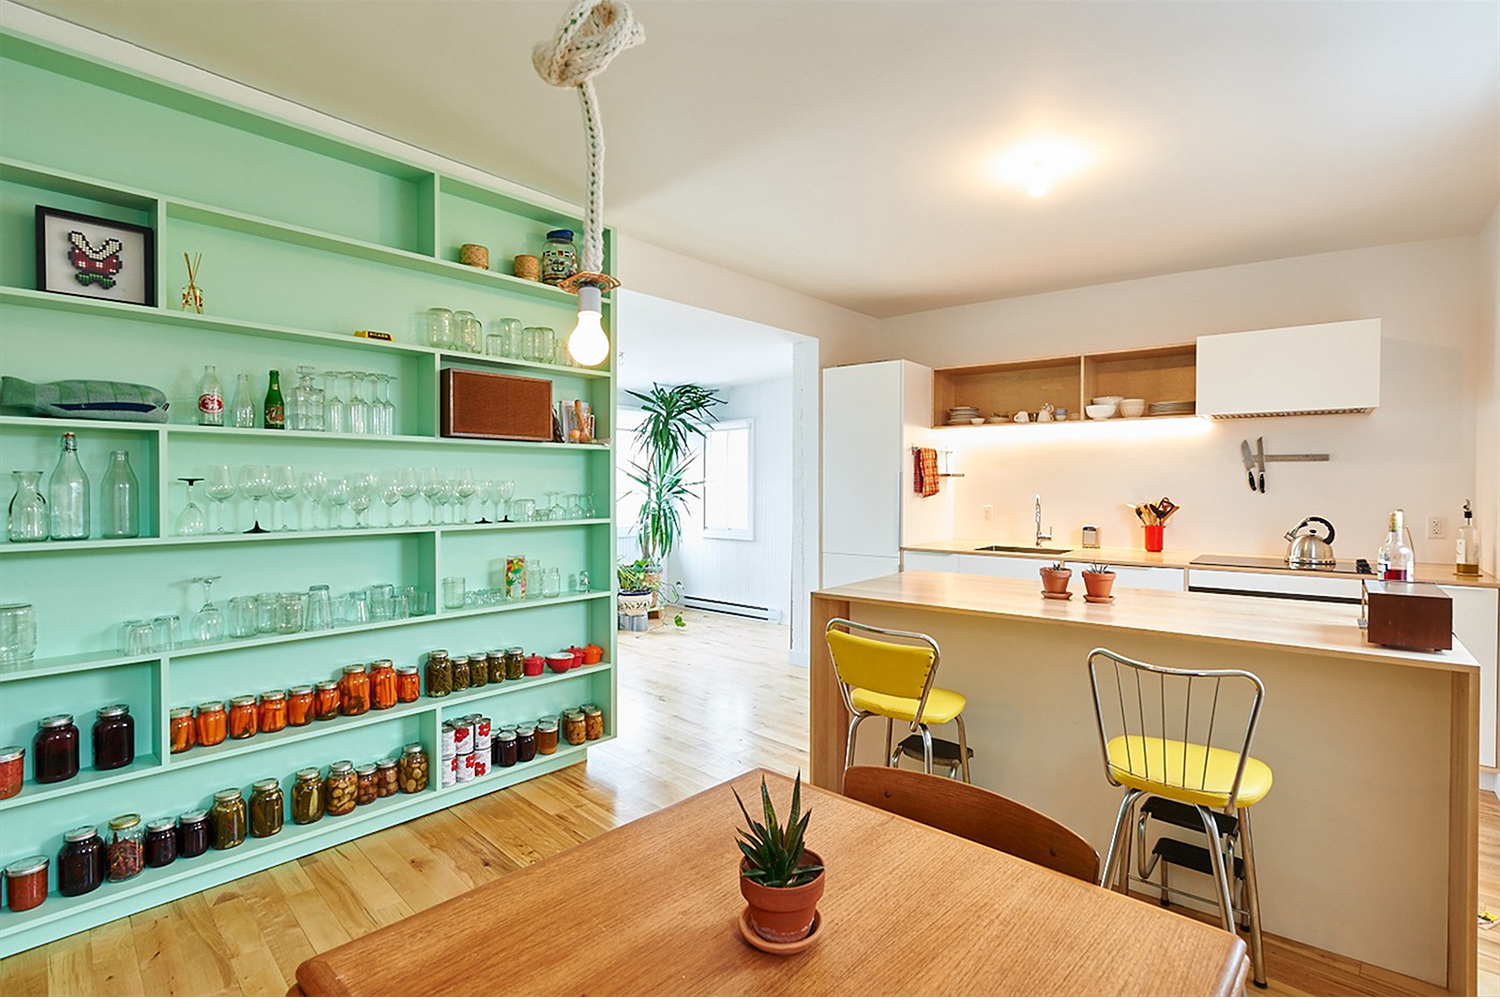 Renovation of a duplex. Kitchen layout. Prefabricated cabinets and custom wood counters. Turquoise integrated bookcase